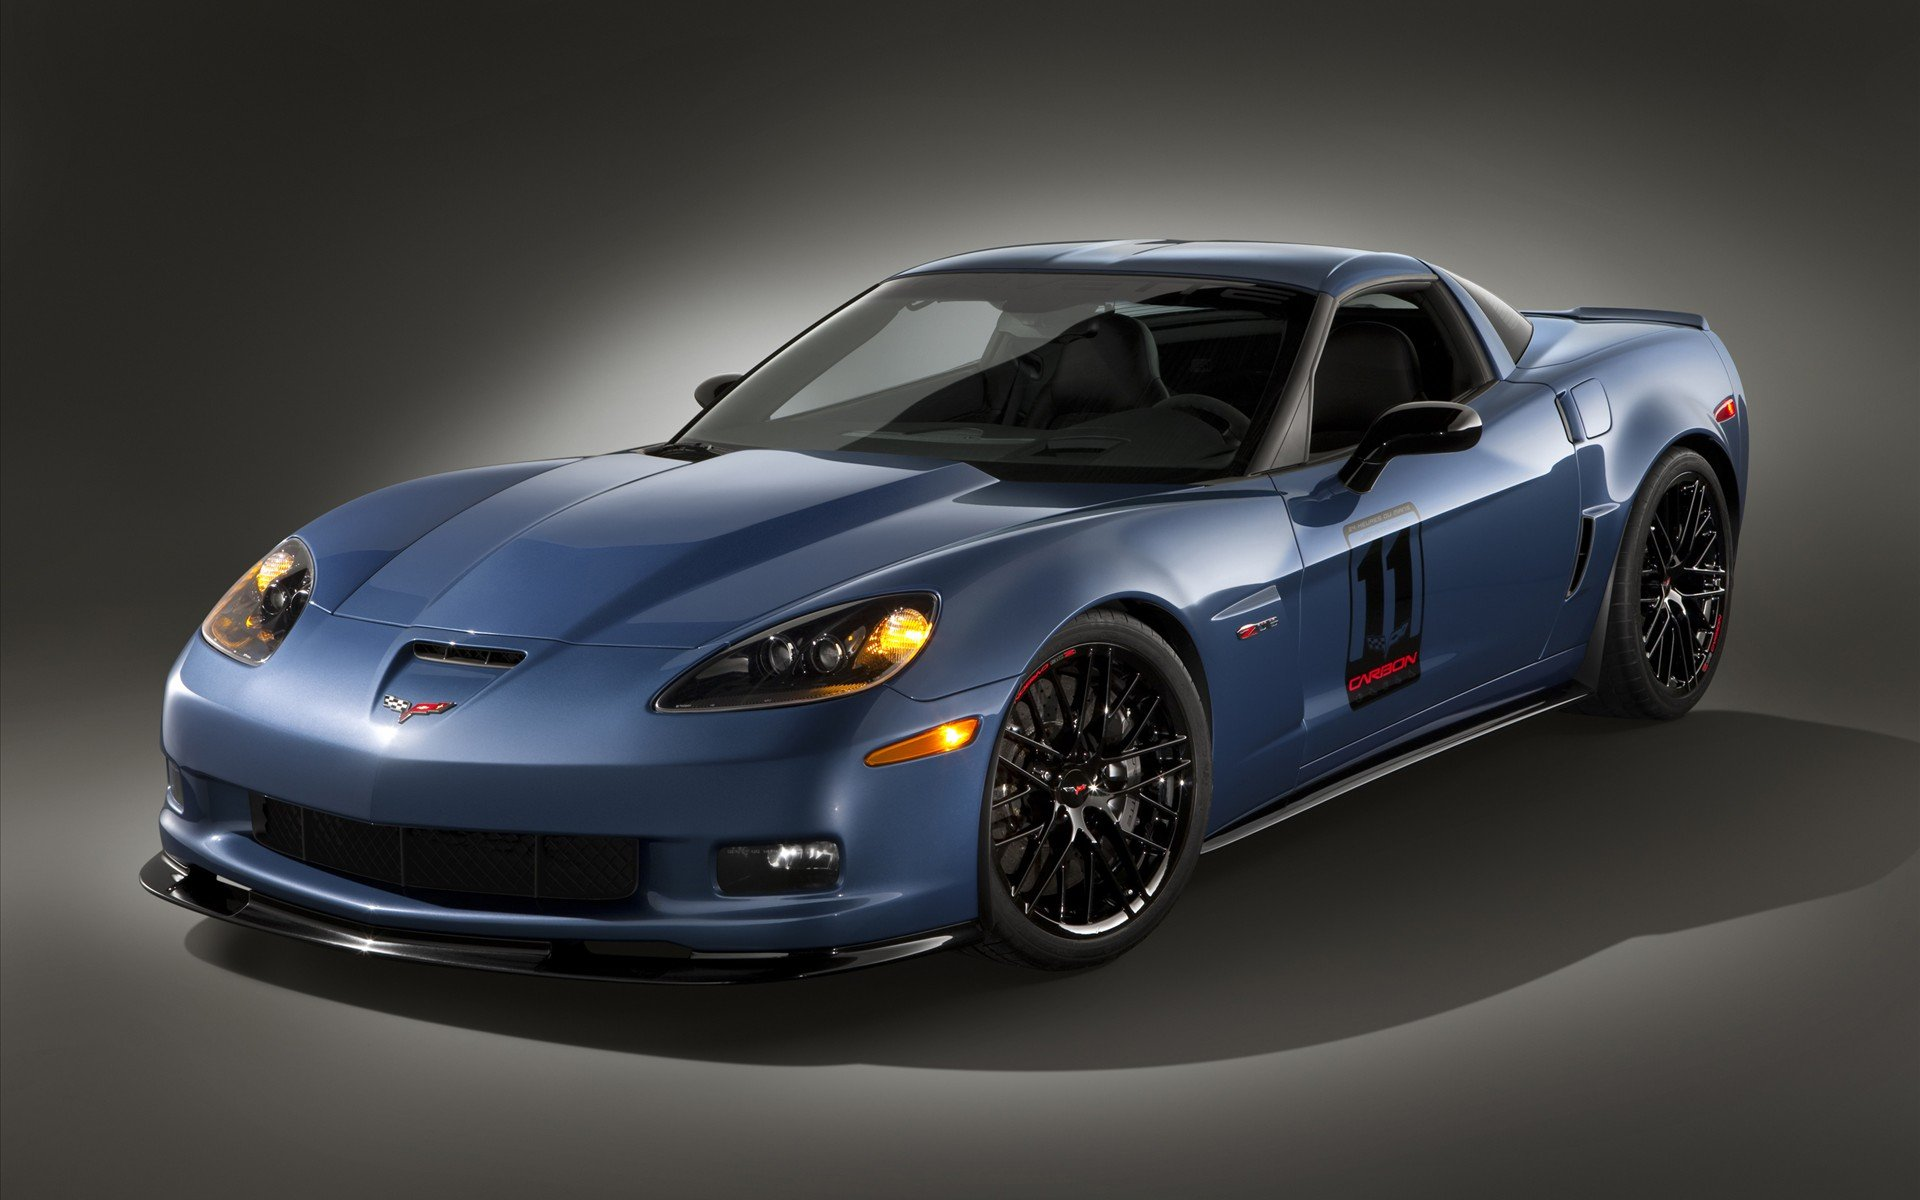 2011 Corvette Z06 Carbon Wallpapers HD Wallpapers 1920x1200